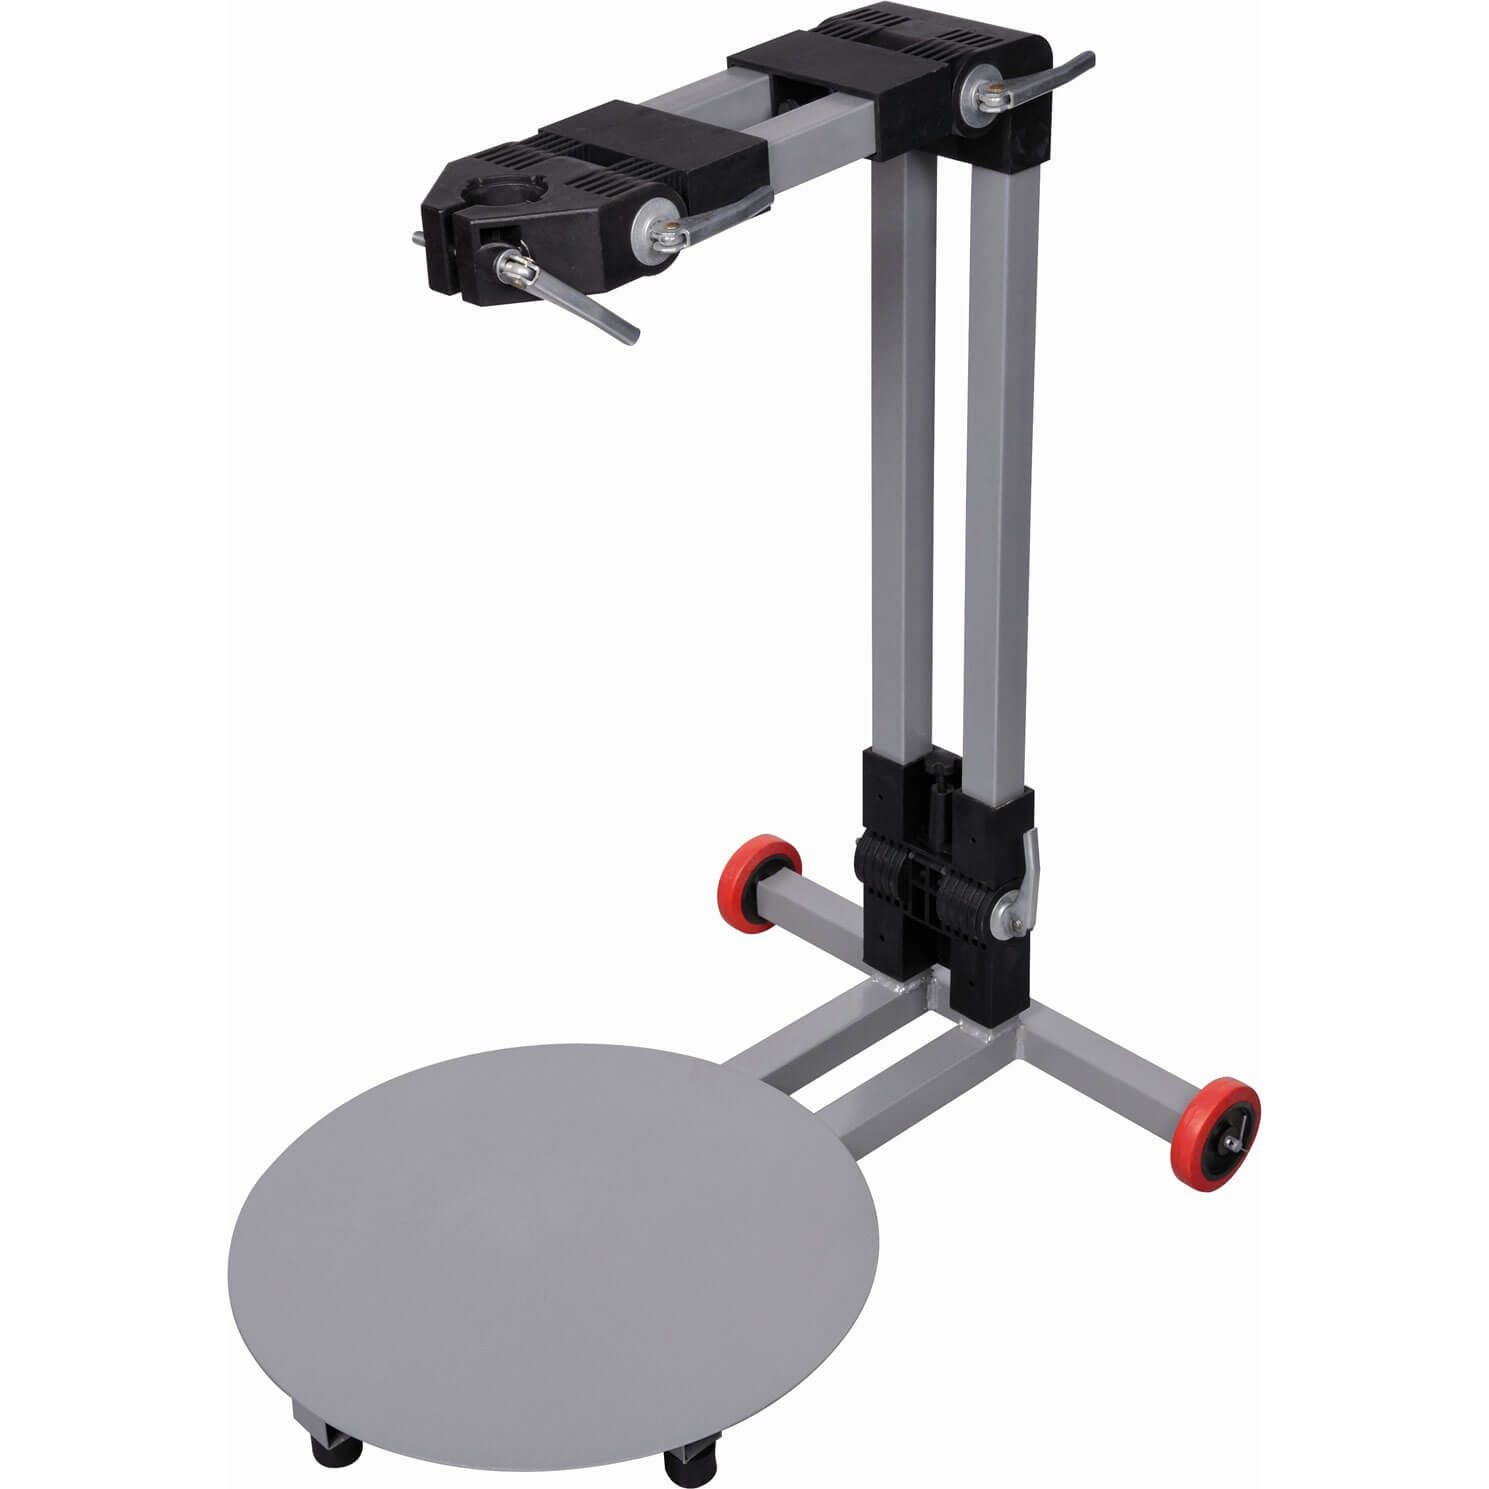 Vitrex Mixer Stand for Power Paddle Mixers